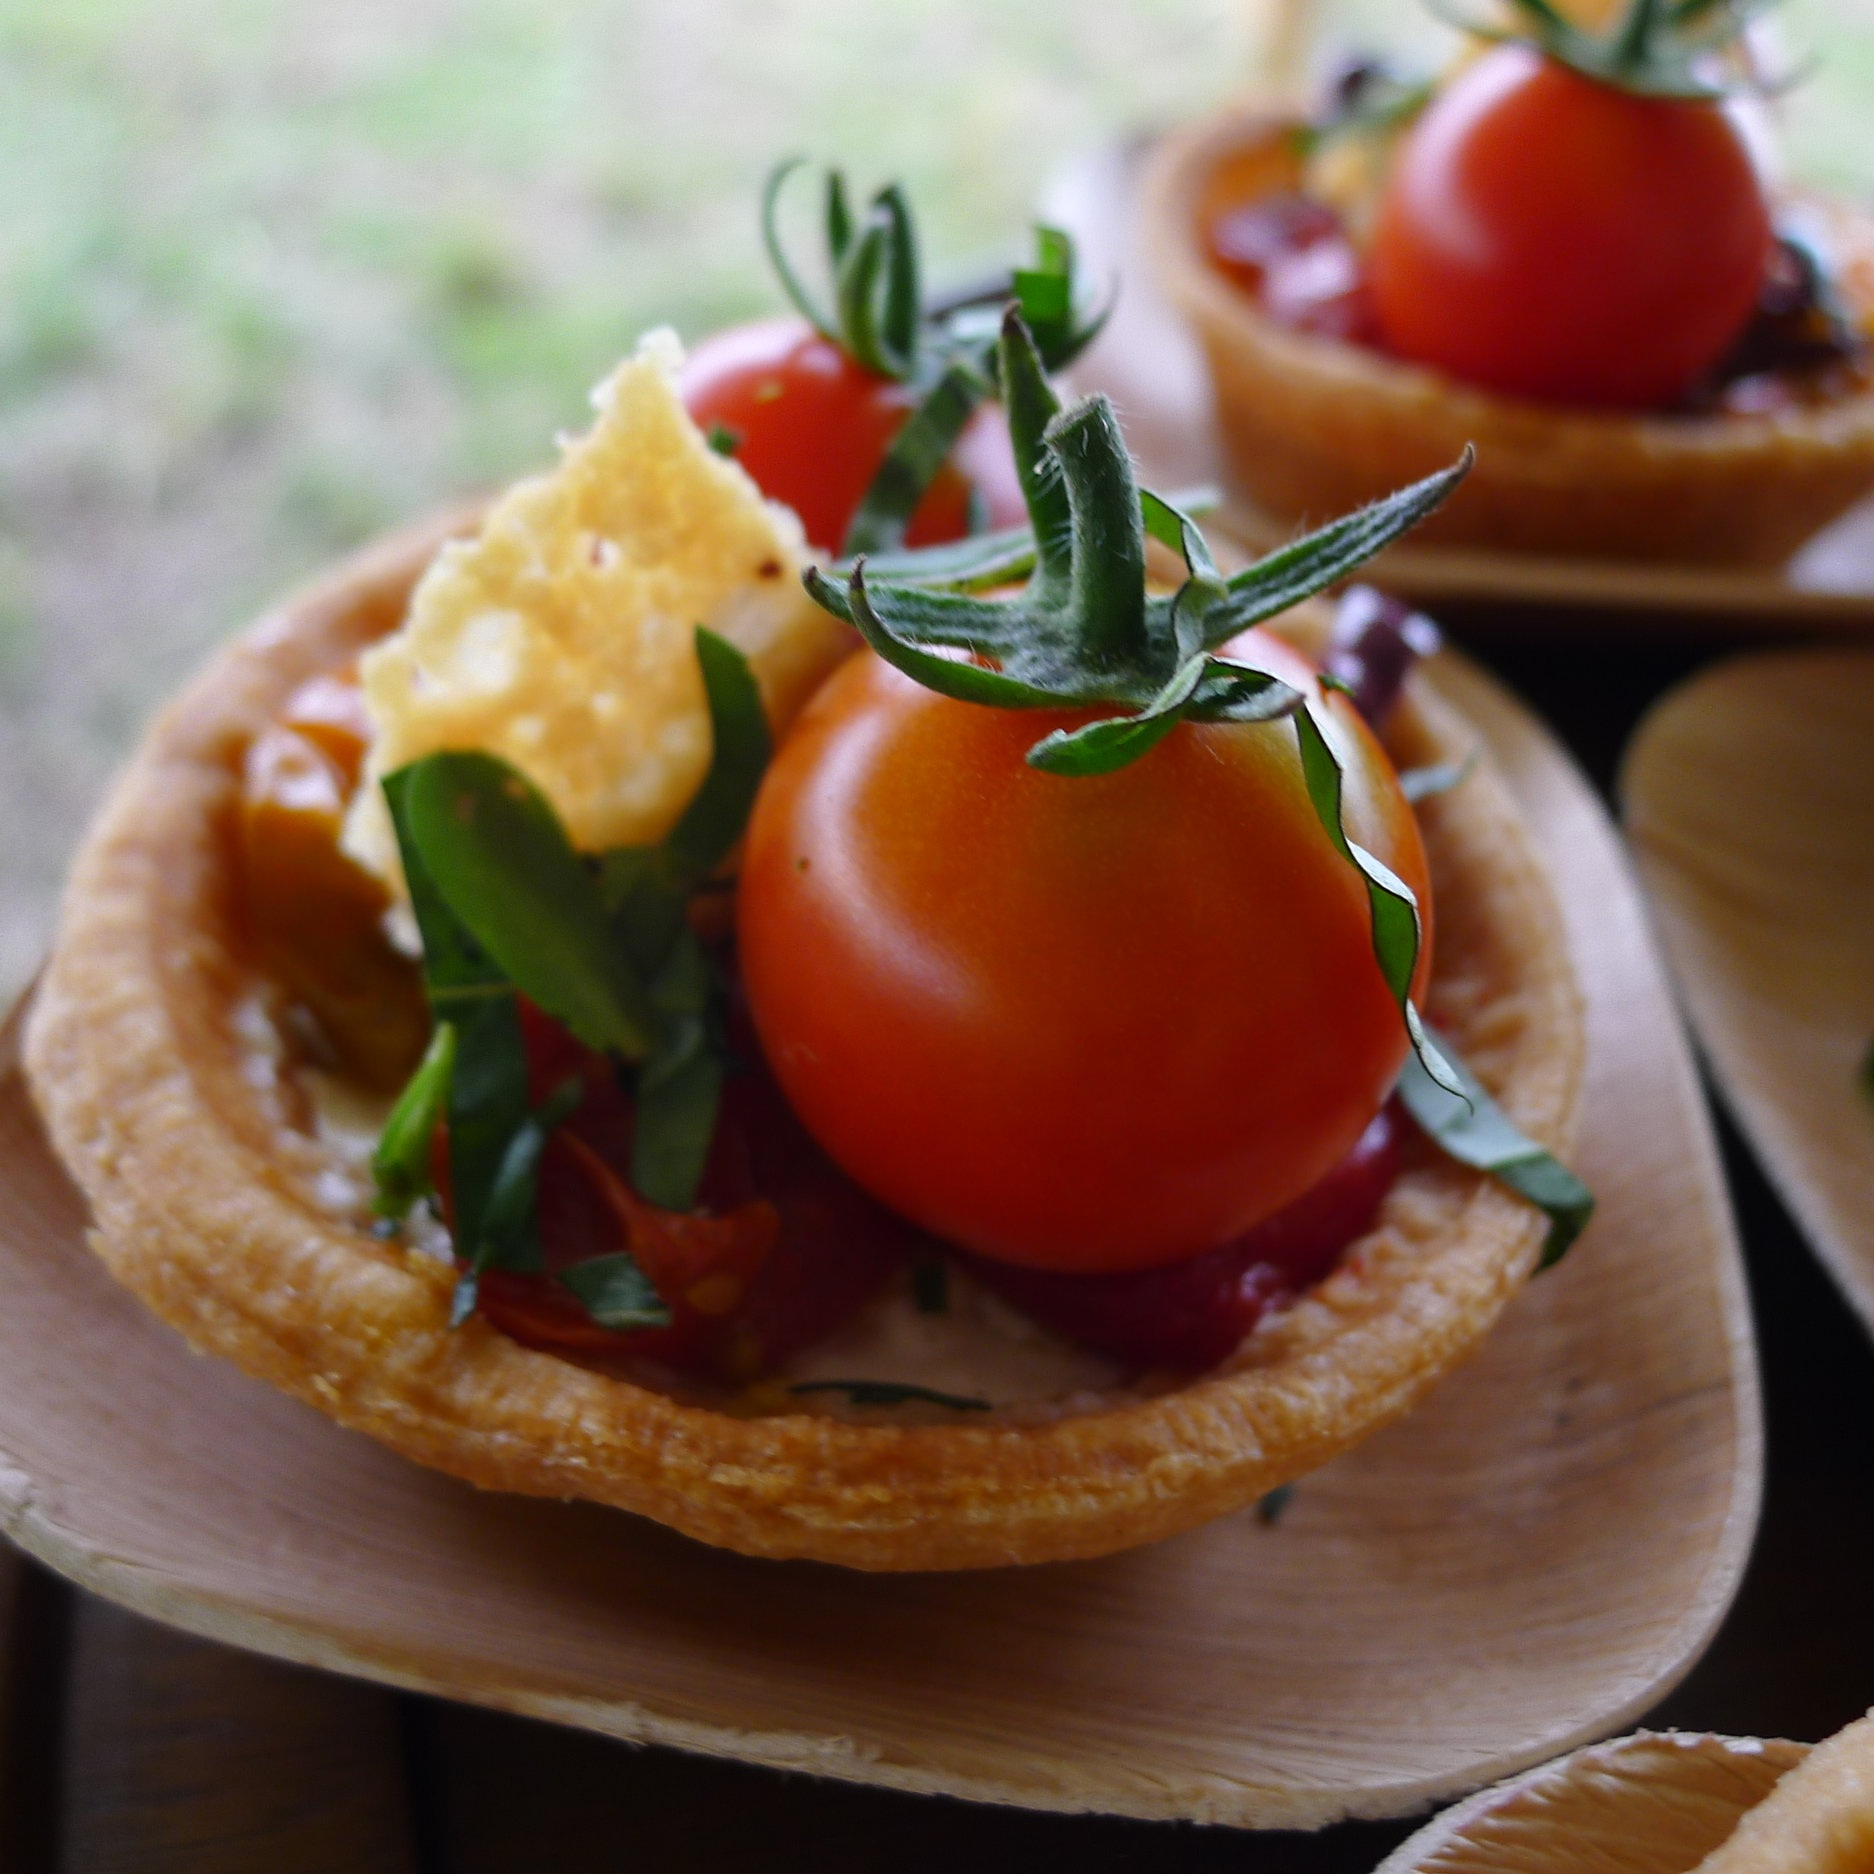 The Café at wave hill - OVEN ROASTED TOMATO TARTcaramelized vidalia onions, goat cheese